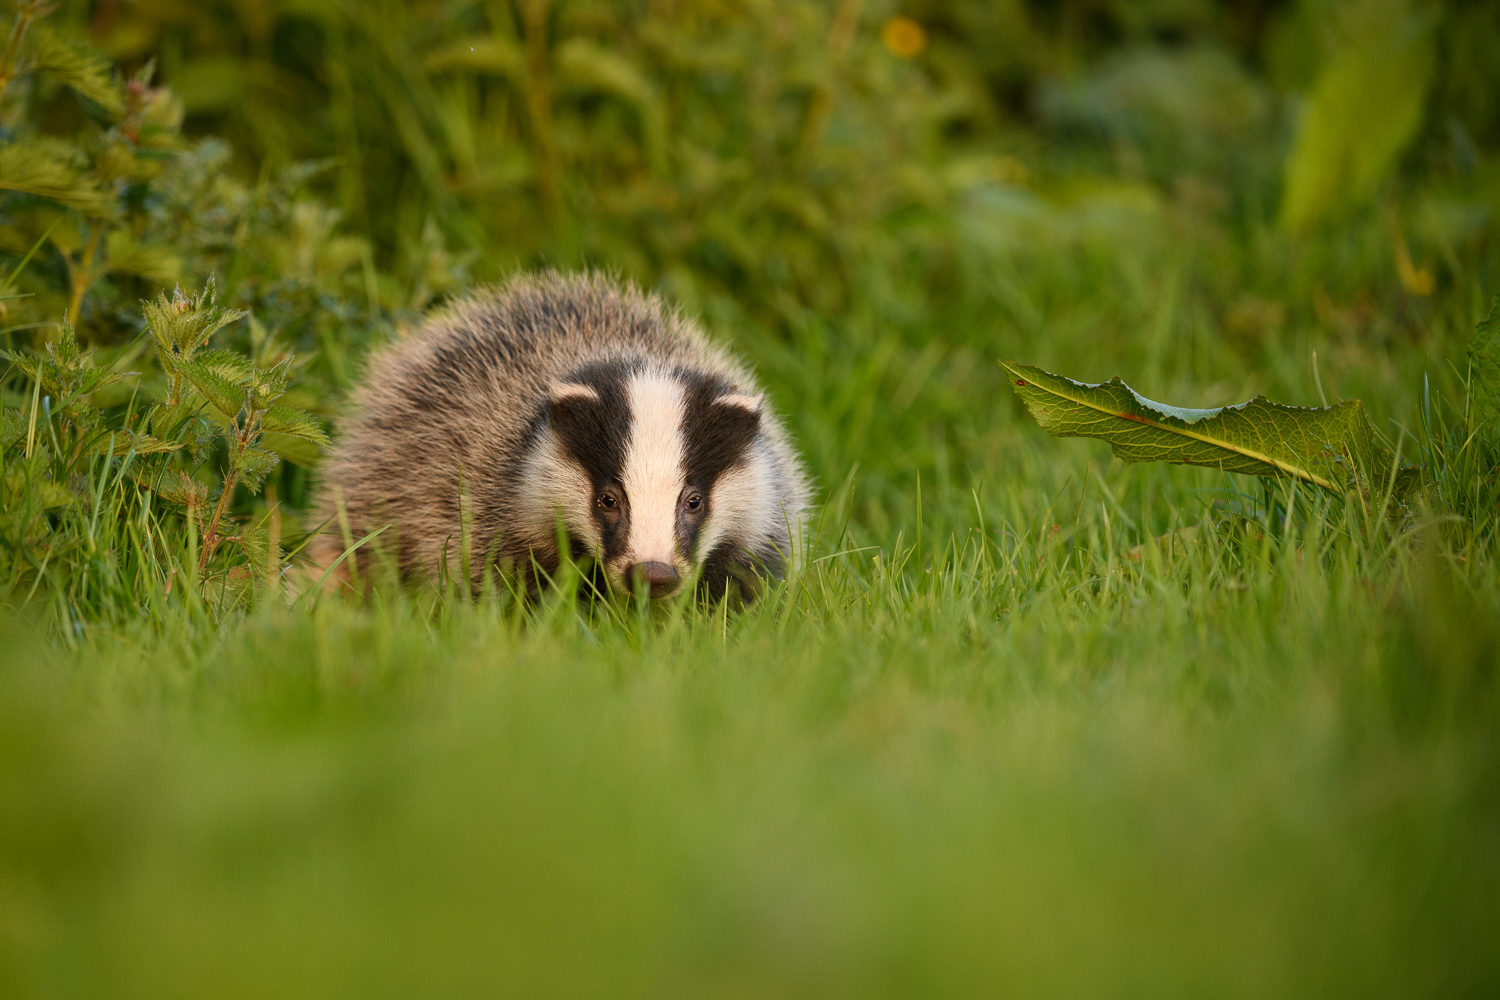 Young Badger Cub